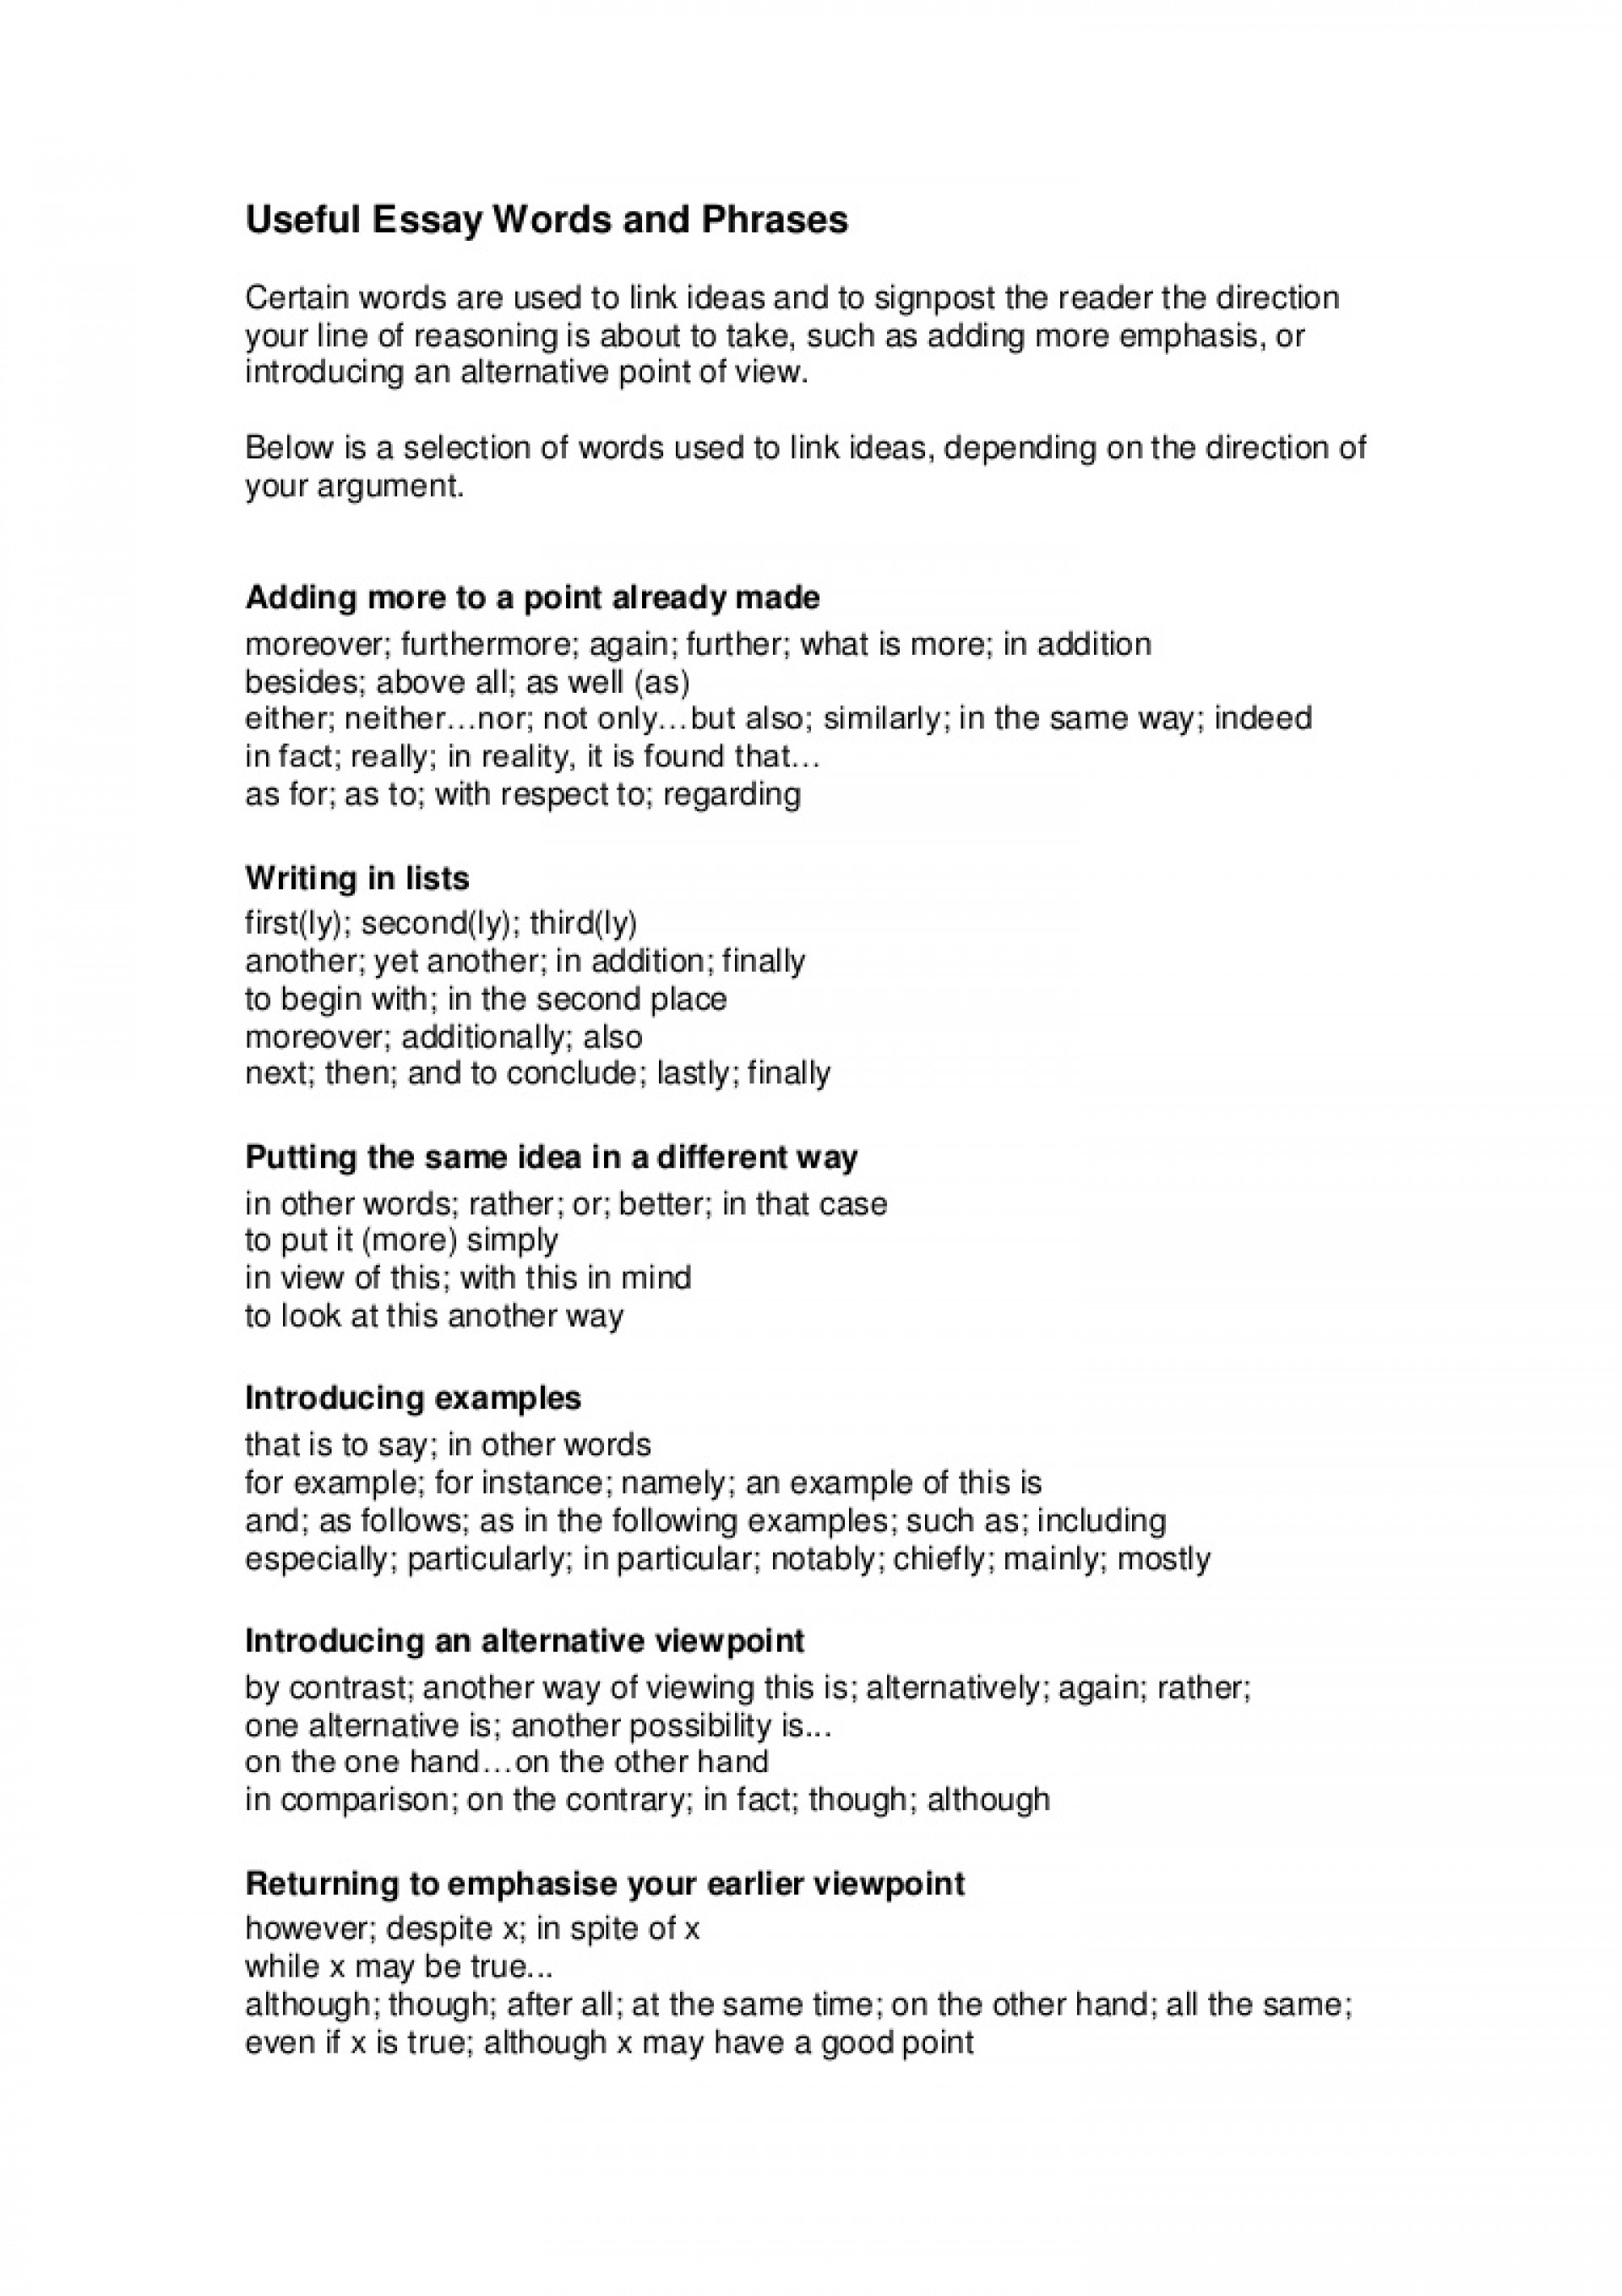 018 Writtenassignments2usefulessaywordsandphrases Phpapp02 Thumbnail Opening Sentences For Essays Essay Unique Good Closing Examples Great Introductory Ielts 1920